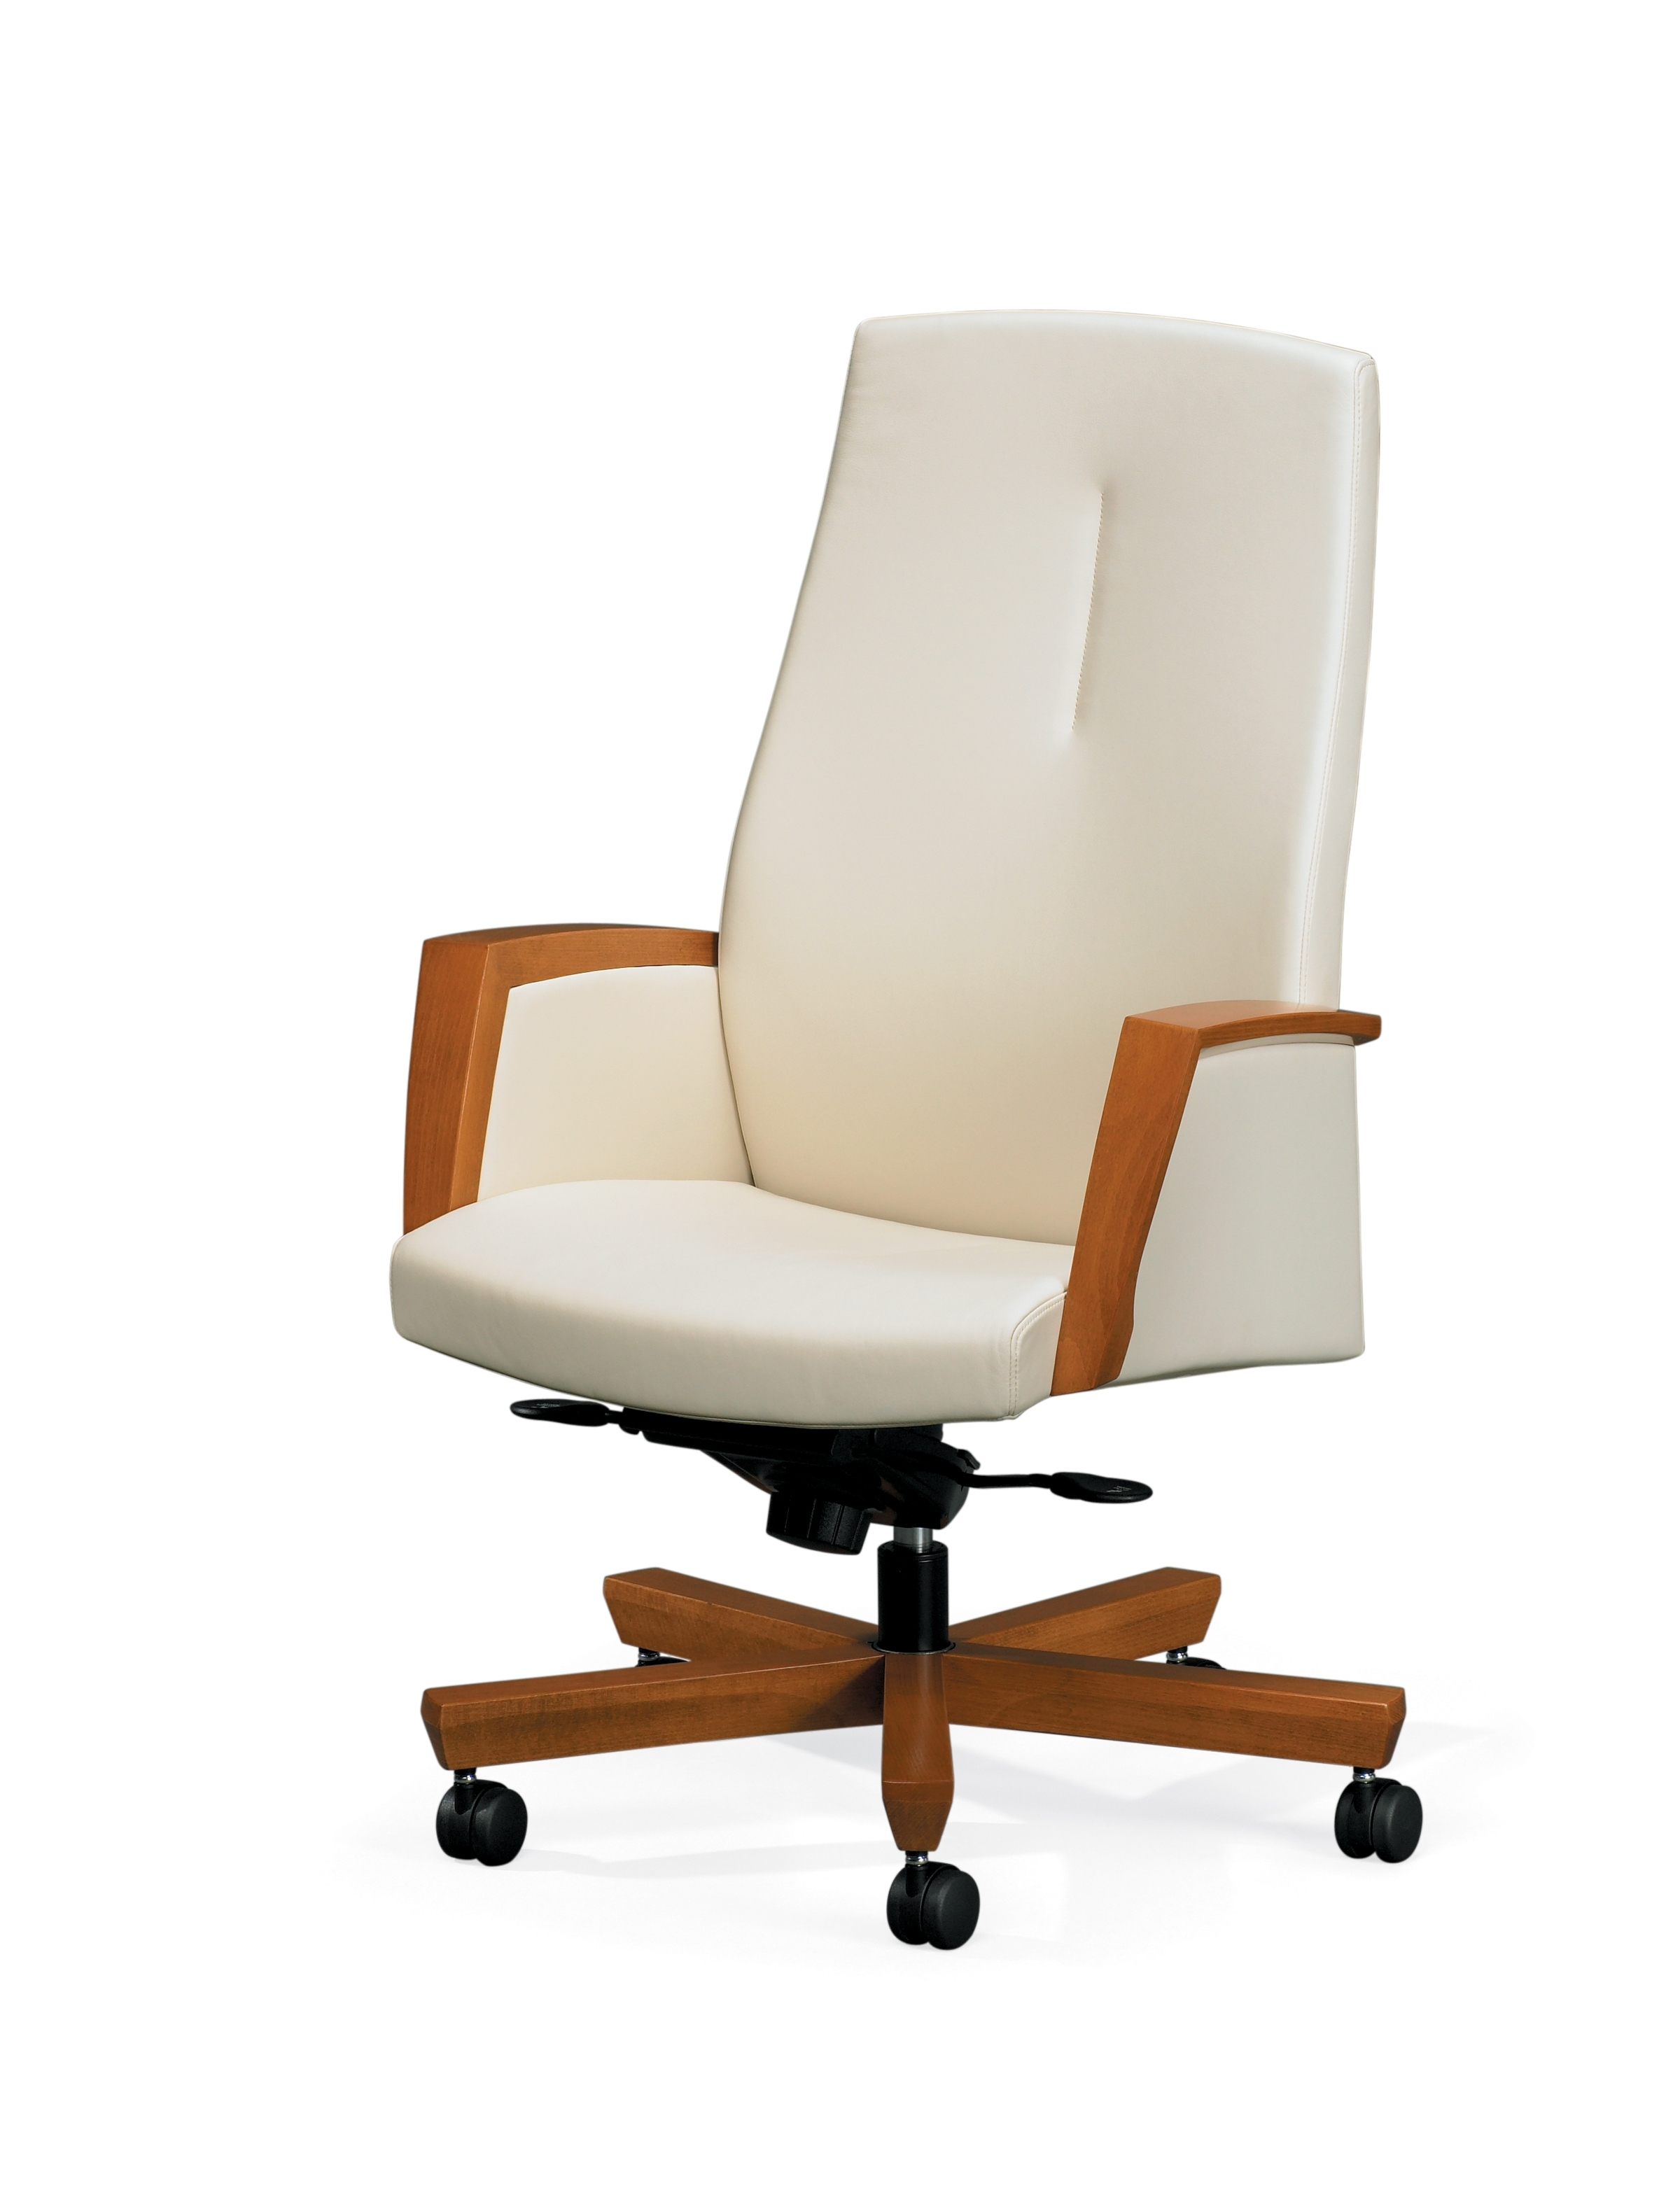 Leather Swivel Recliner Executive Office Chairs In Widely Used Paoli Diverge Office Chair – Contemporay And Transitional Seating (View 15 of 20)